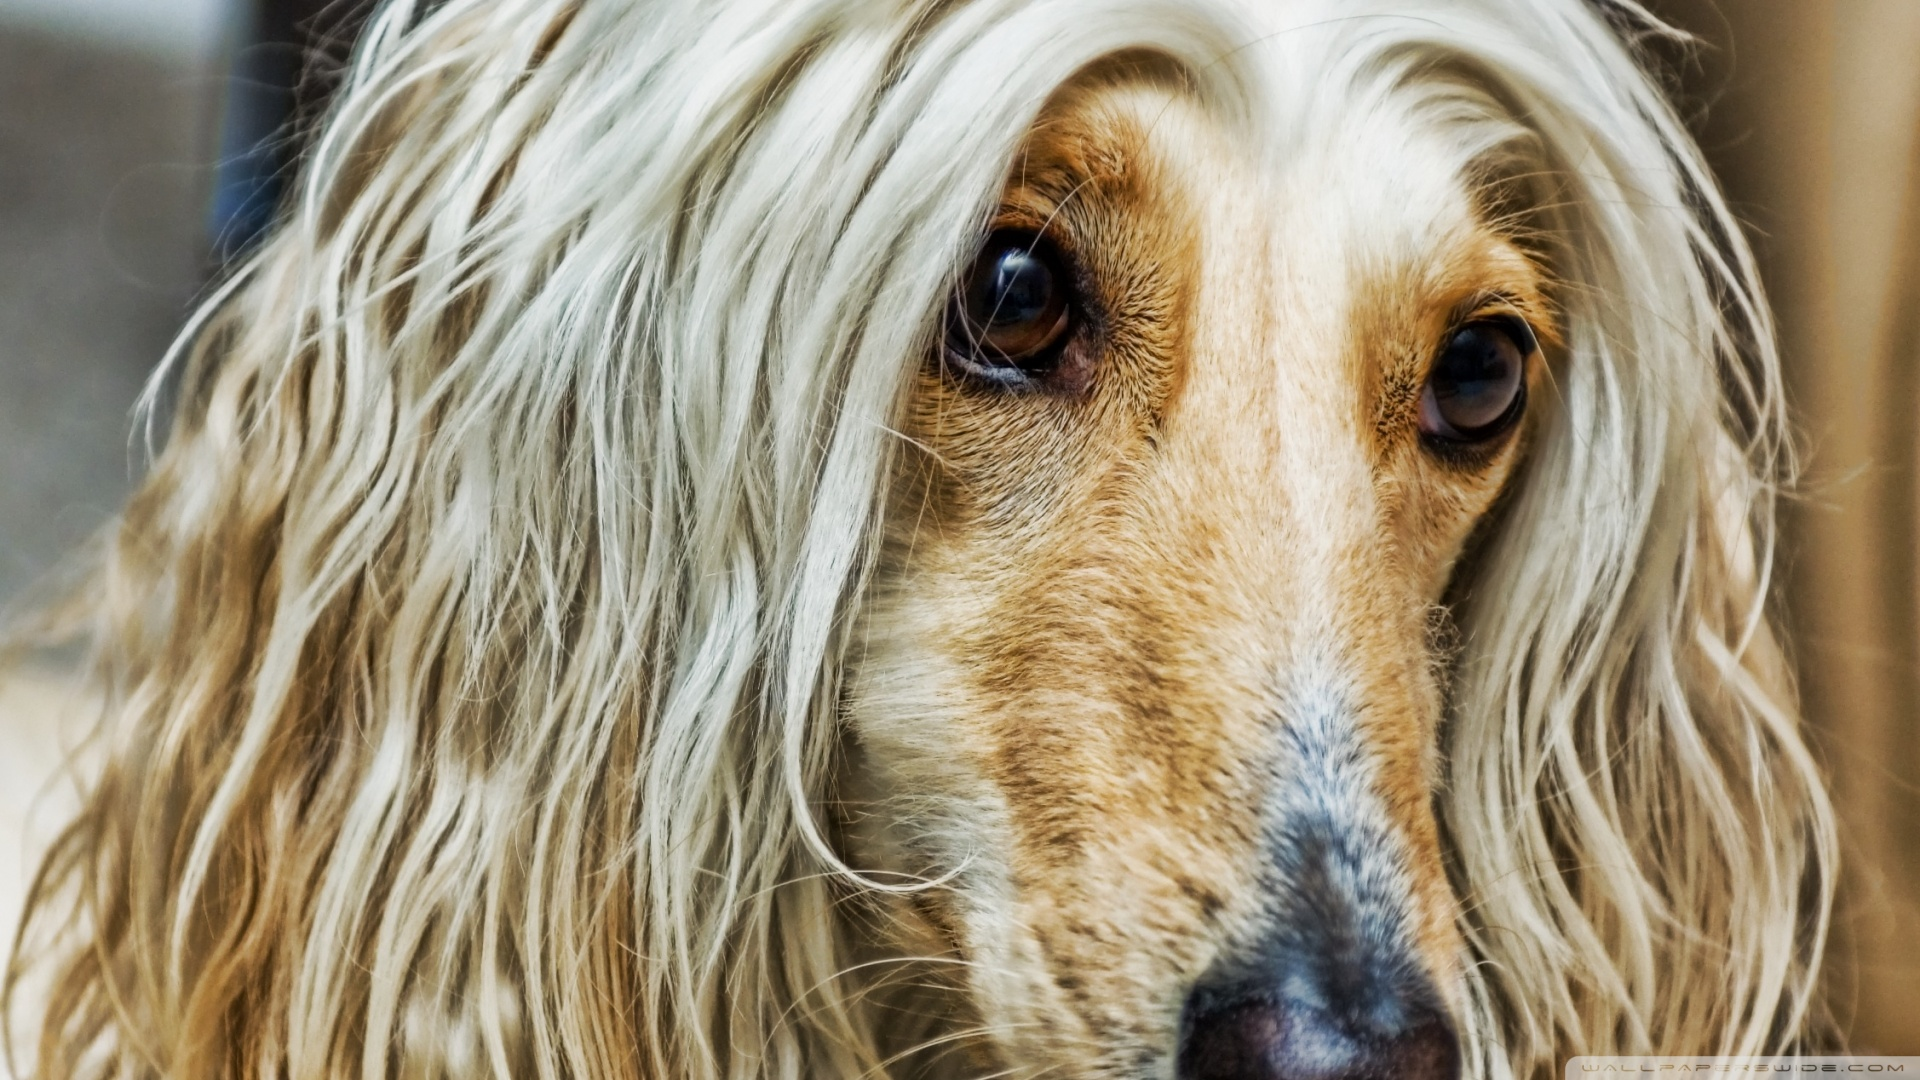 Afghan Dog Wallpaper 1920x1080 Afghan Dog 1920x1080